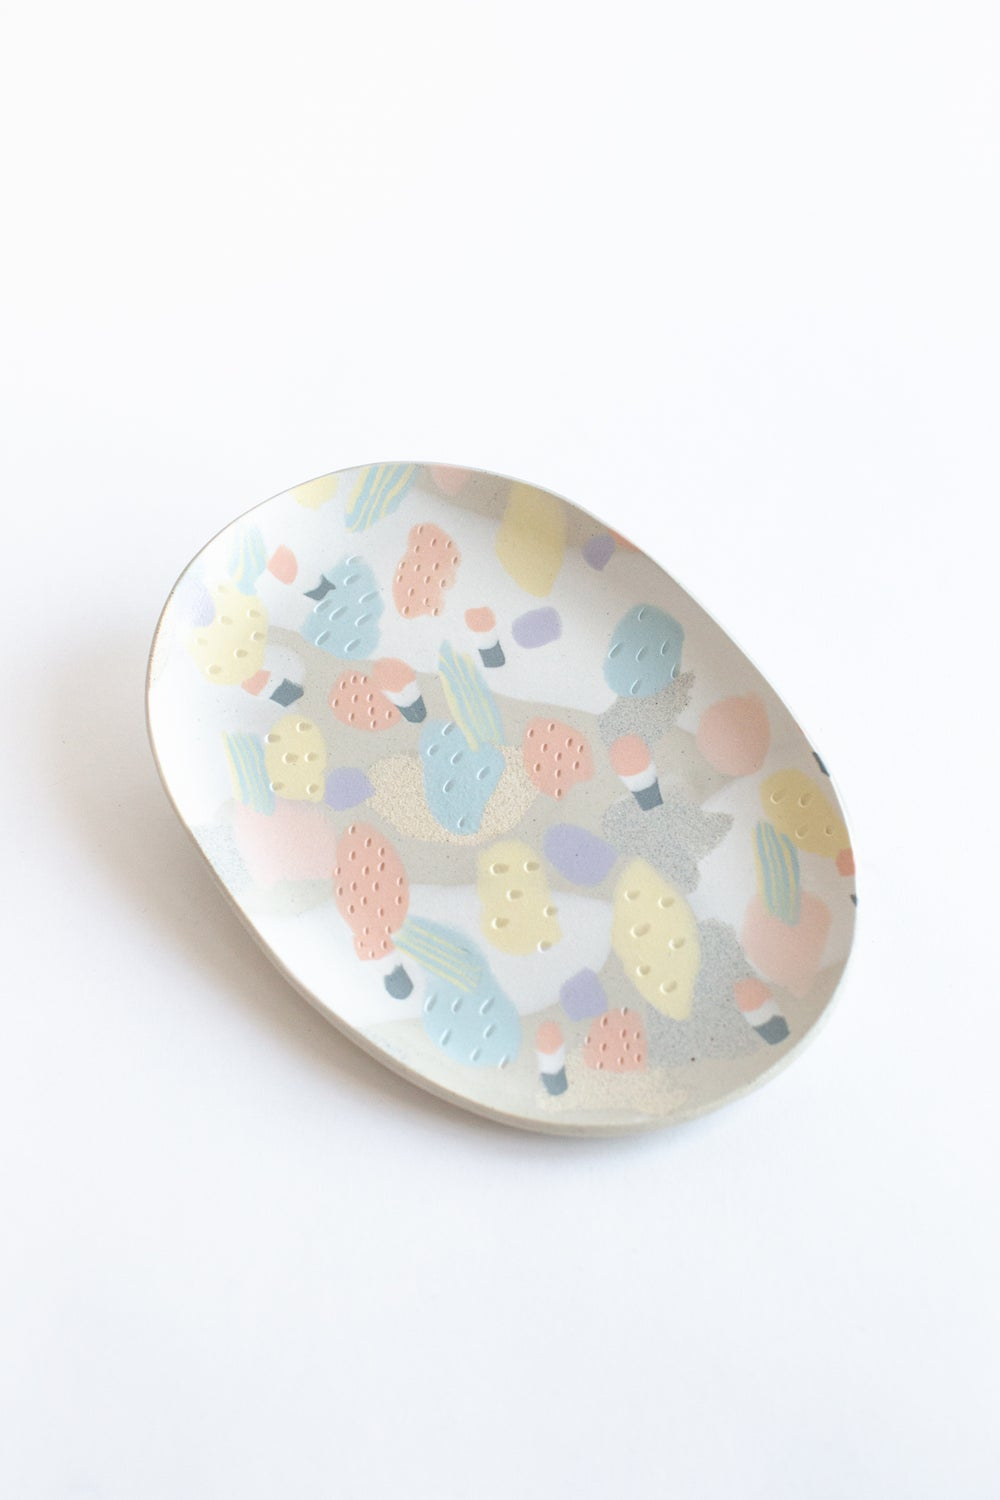 Image of French Candy Shop Pastel - Oval Porcelain Inlay Serving Platter